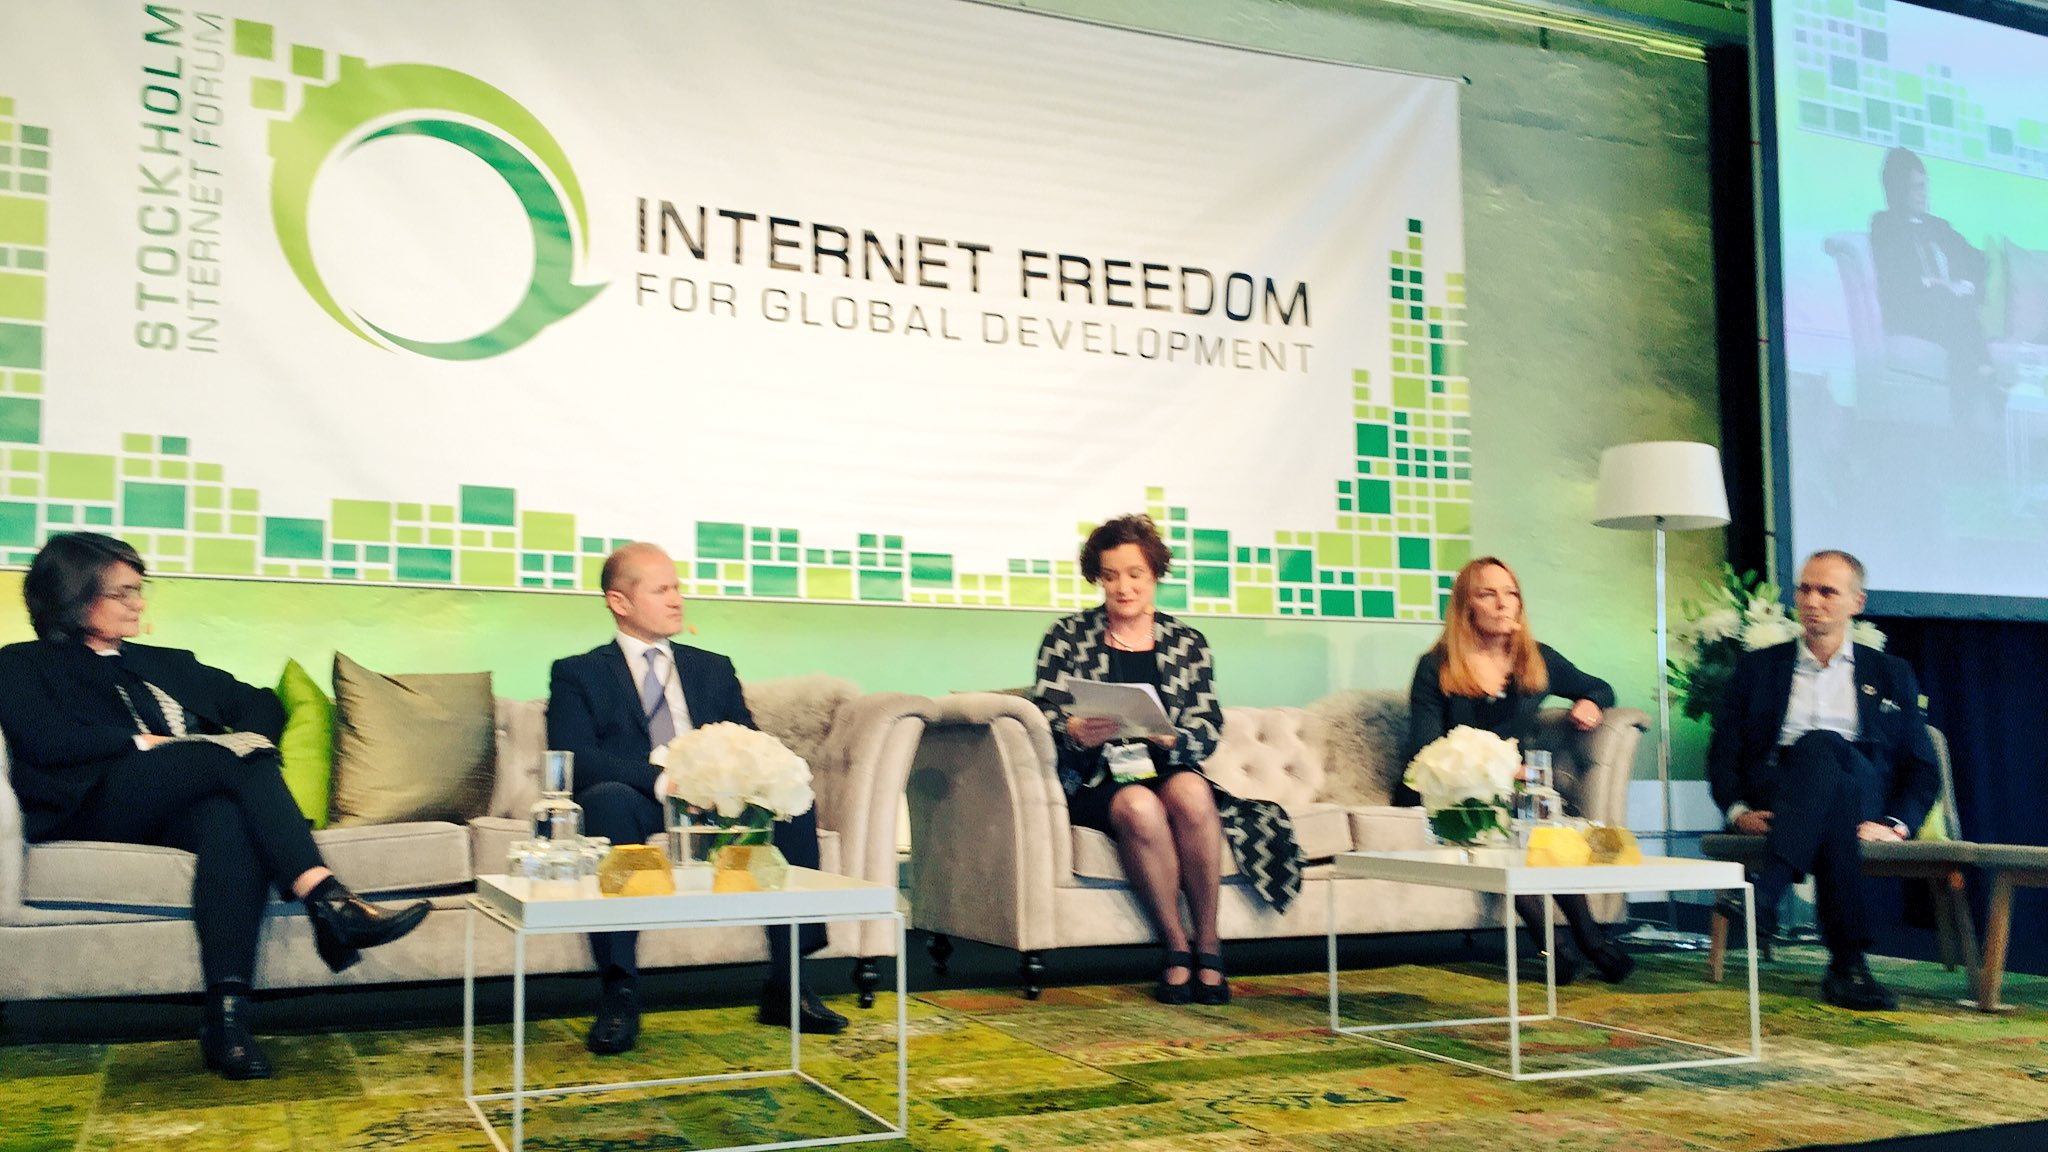 Main session #leaveningNo1offline #SIF17 @fxinternet https://t.co/ZaxwZ5fu9w